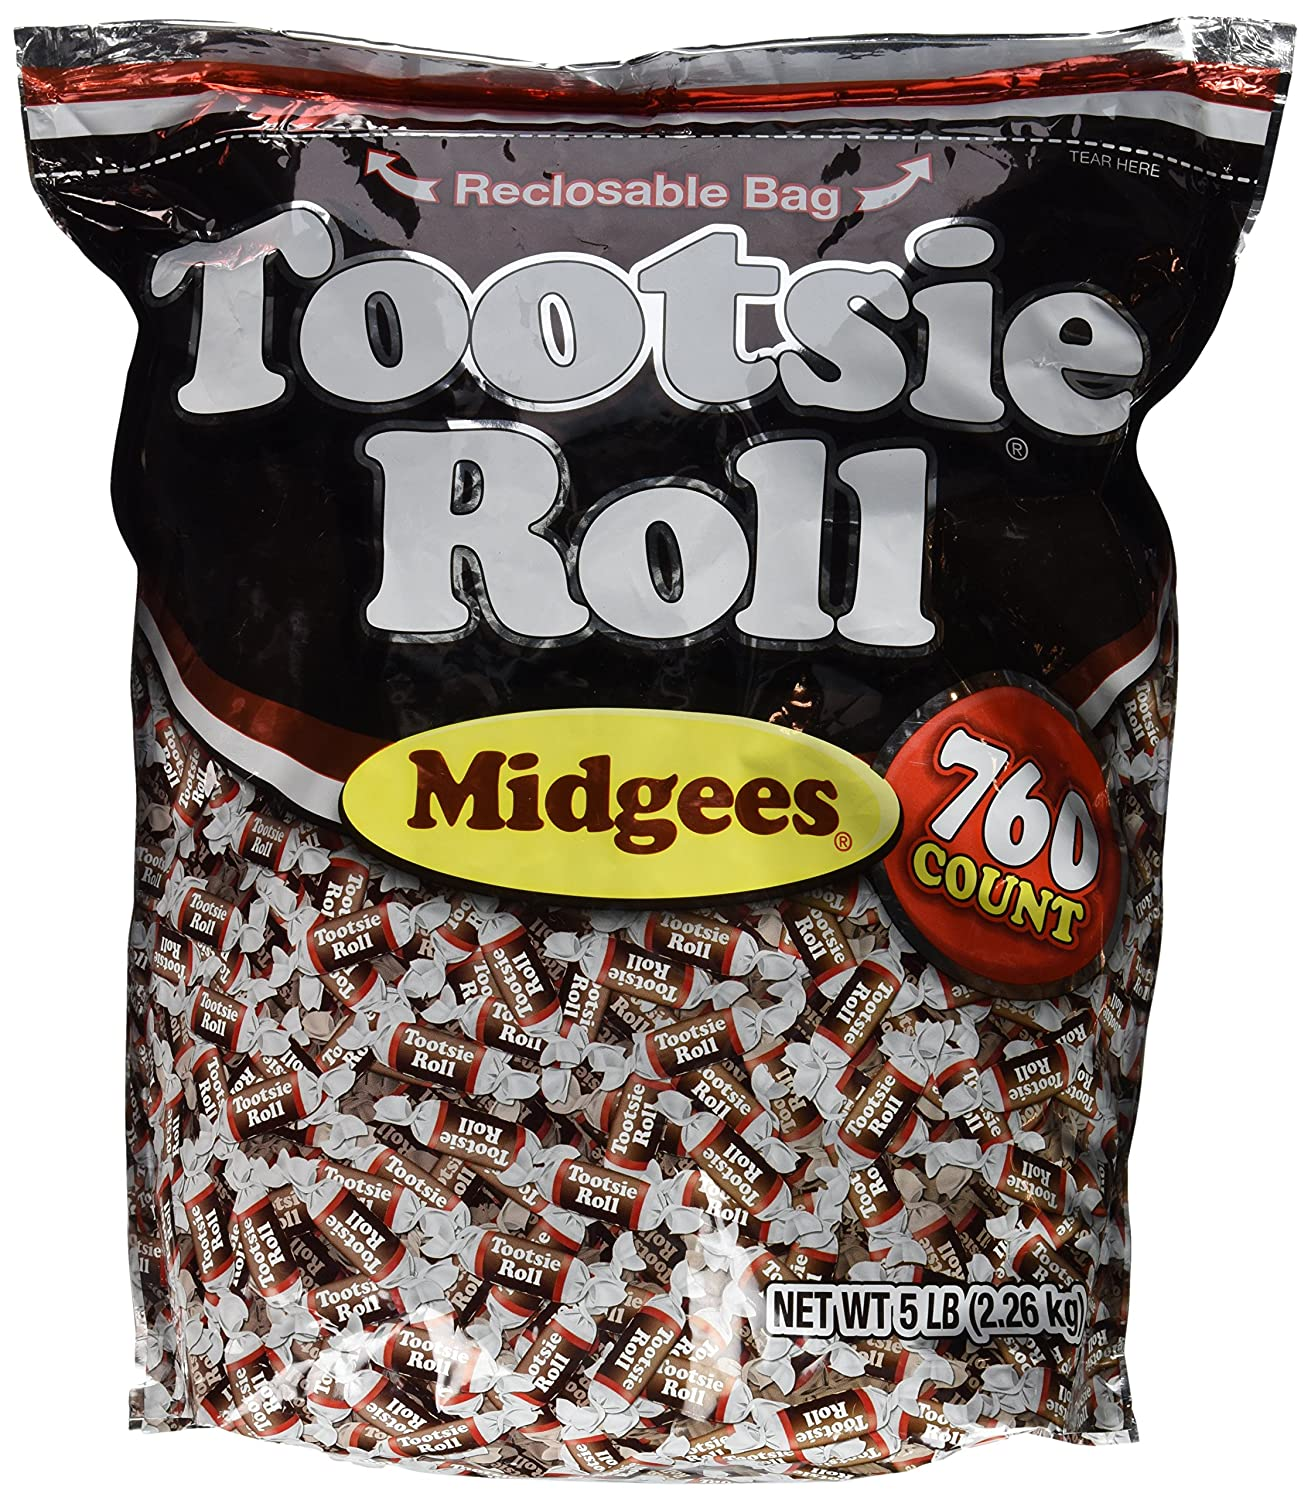 Tootsie Roll Midgees Candy 2021 All items free shipping autumn and winter new 5 Value Pieces 760 Bag Pound